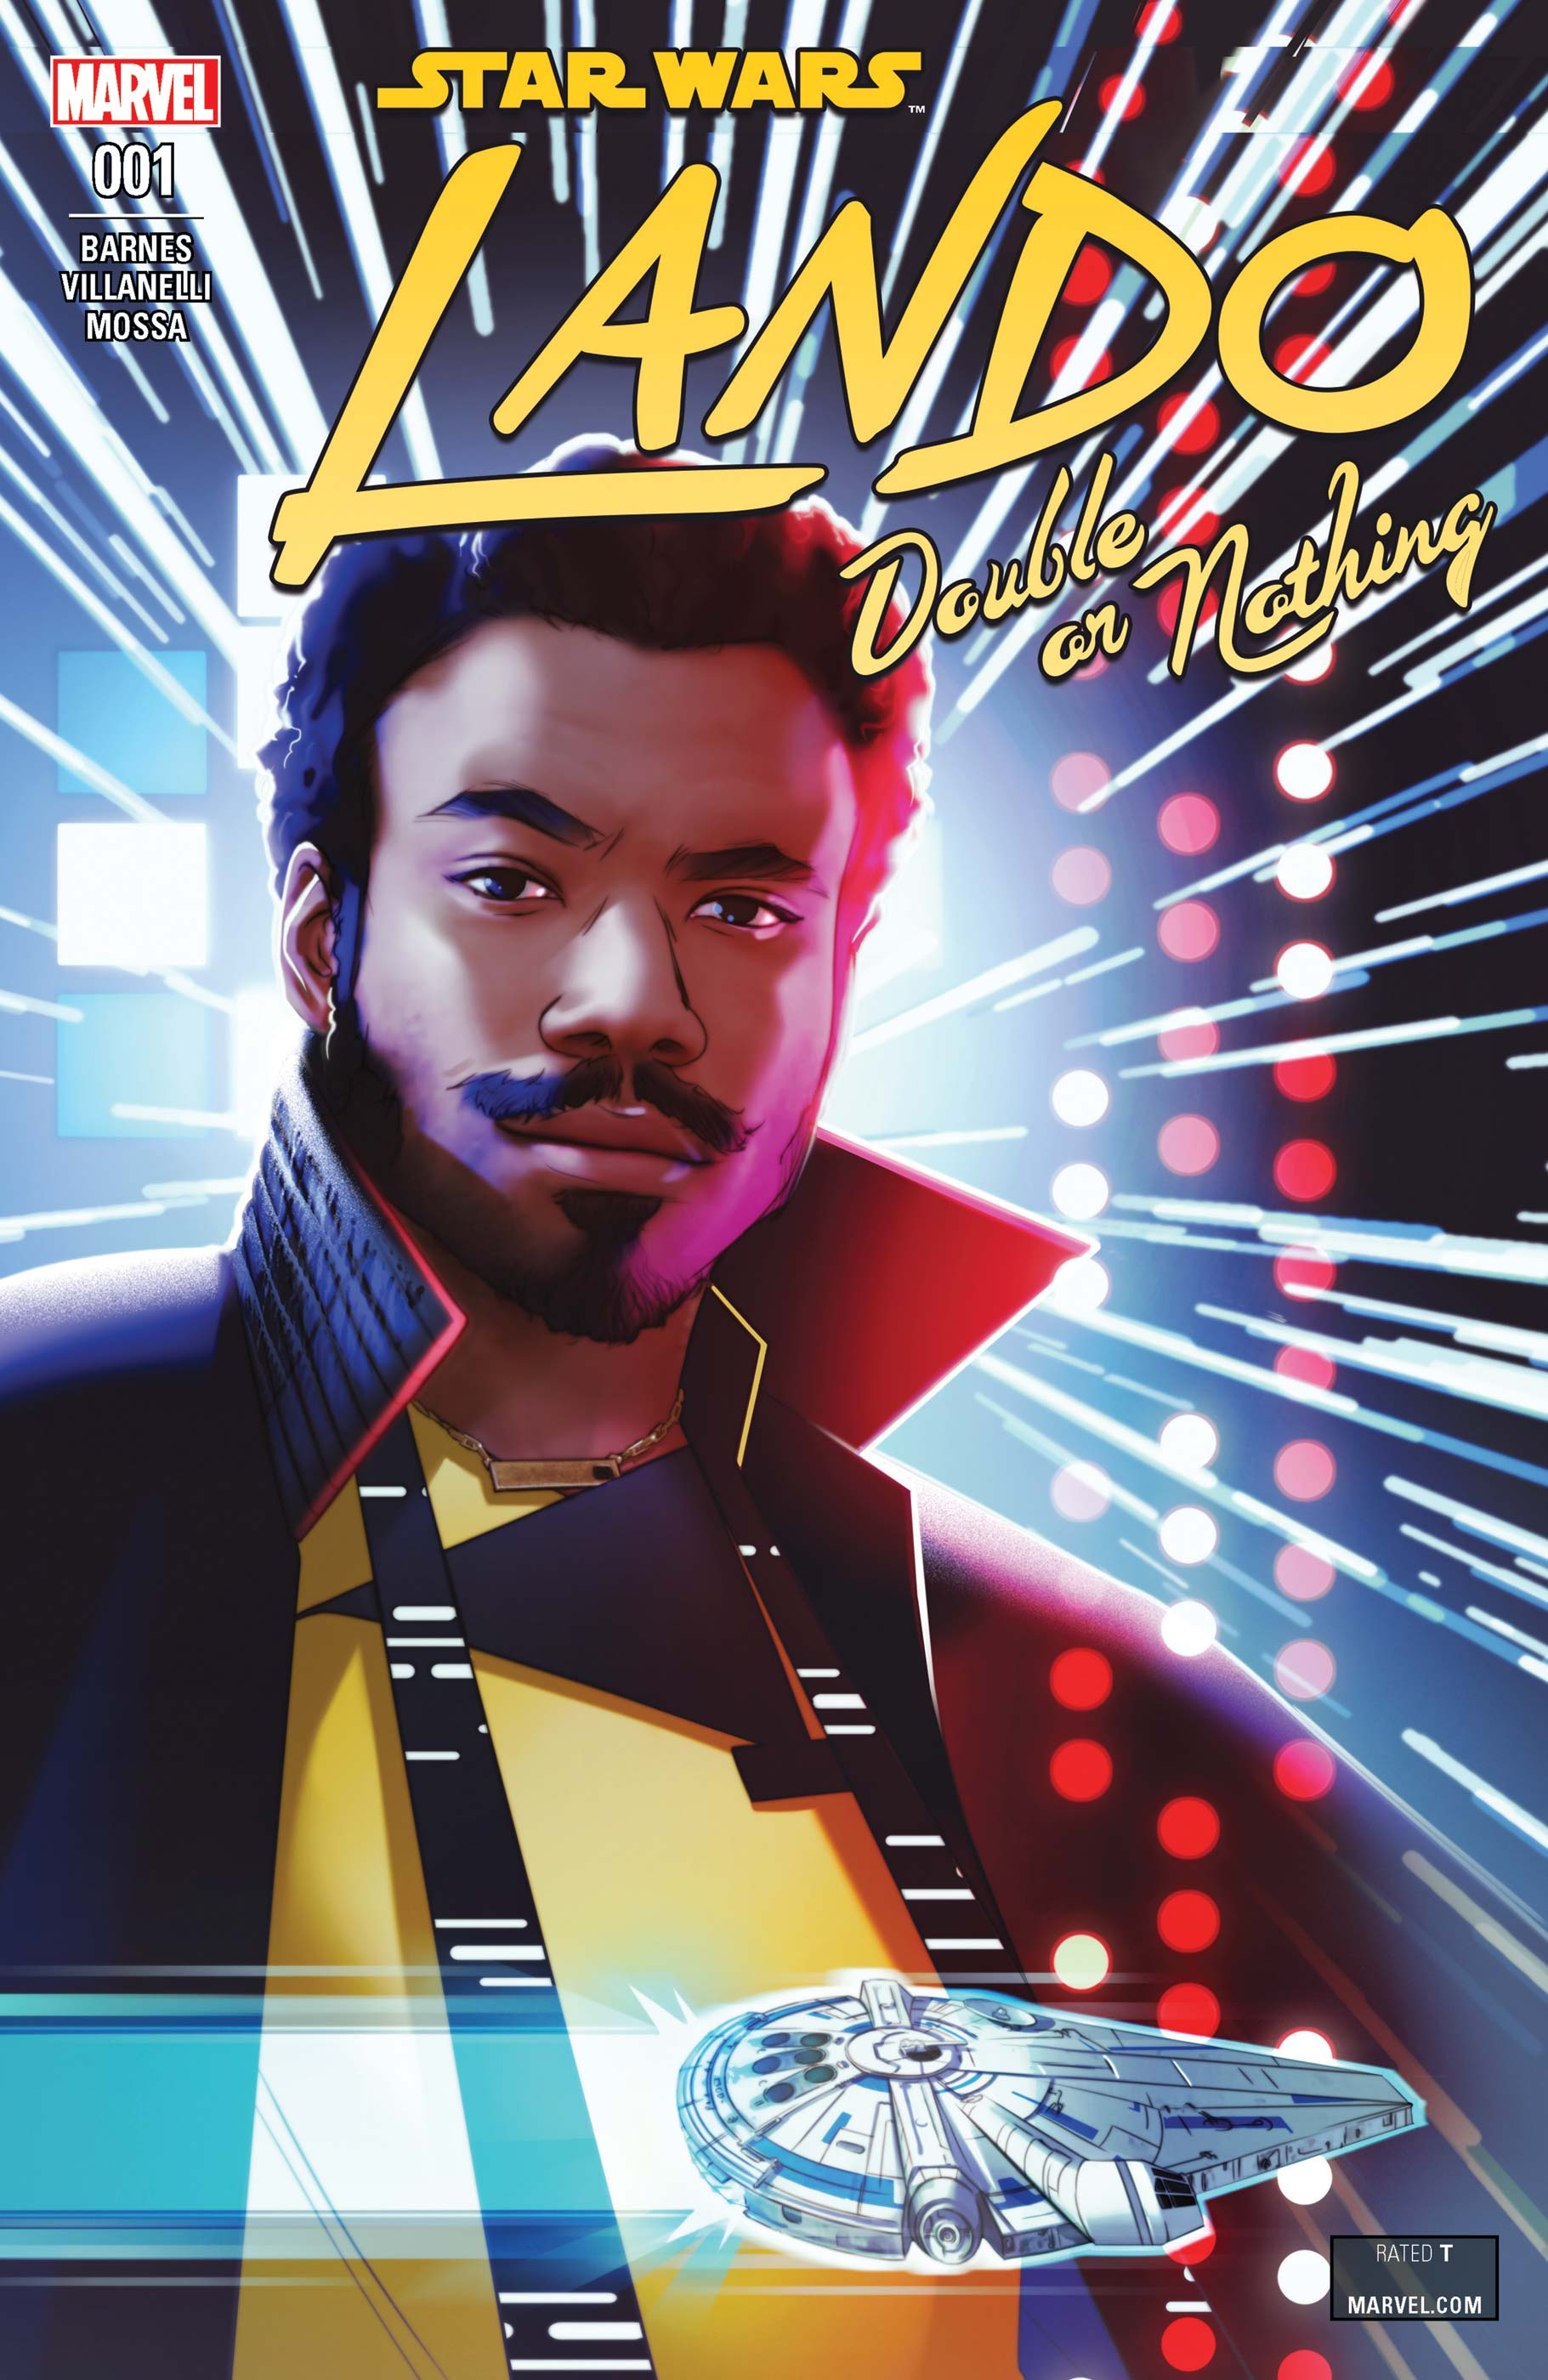 Star Wars: Lando - Double or Nothing (2018) #1